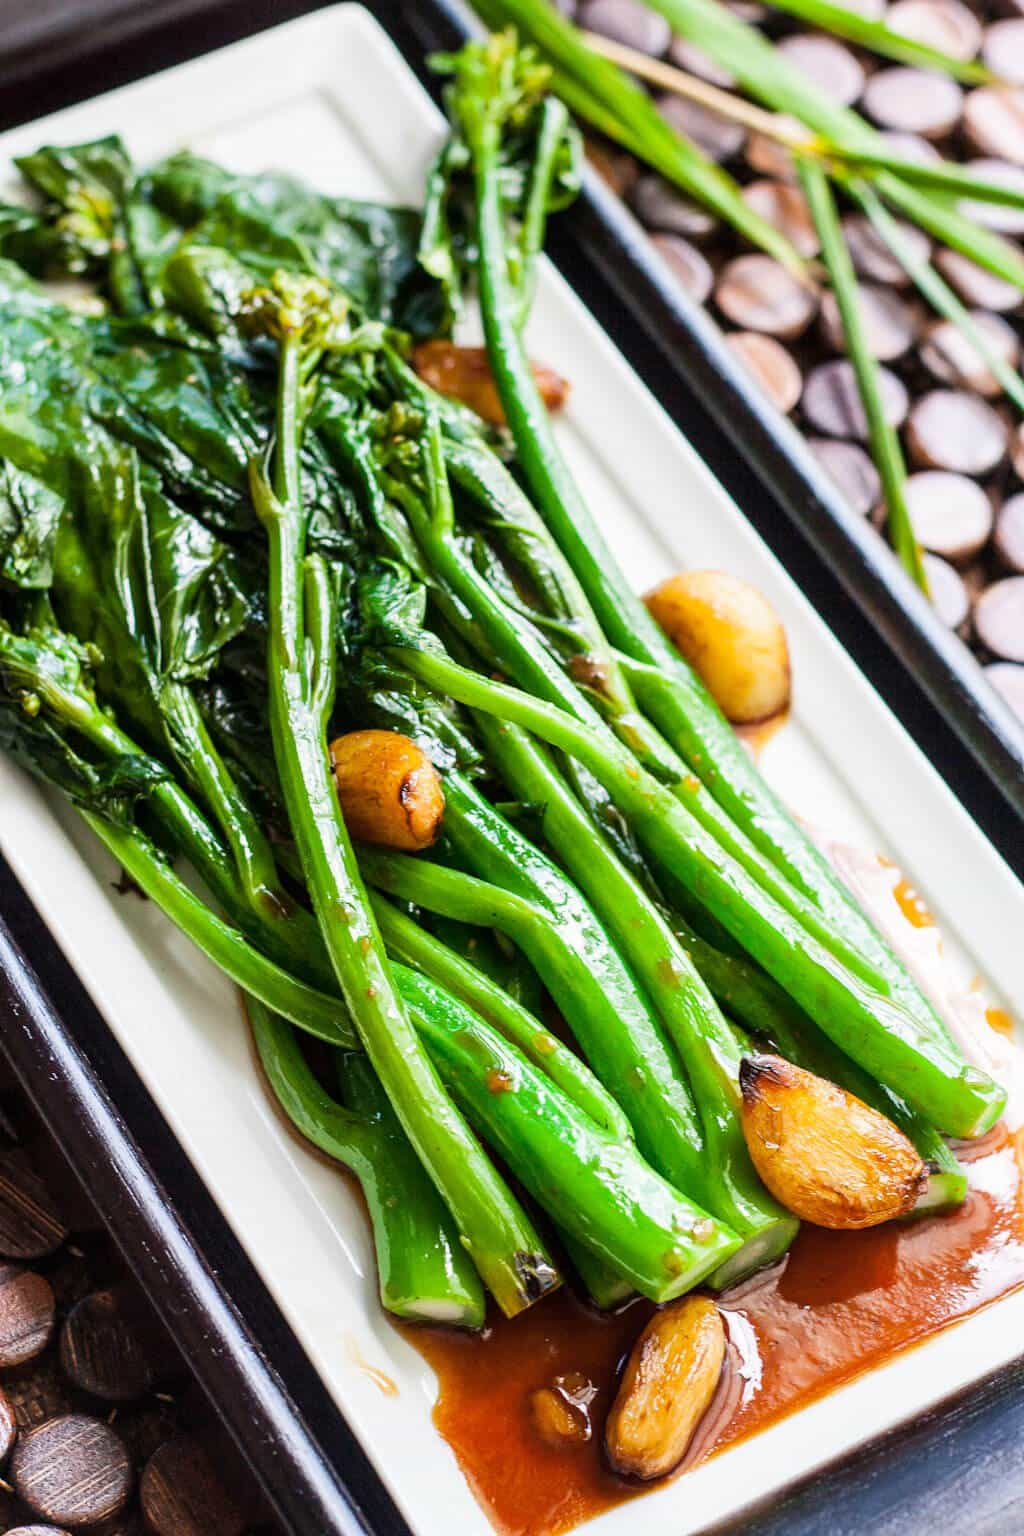 Gai lan recipe with Oyster Sauce Recipe roasted garlic